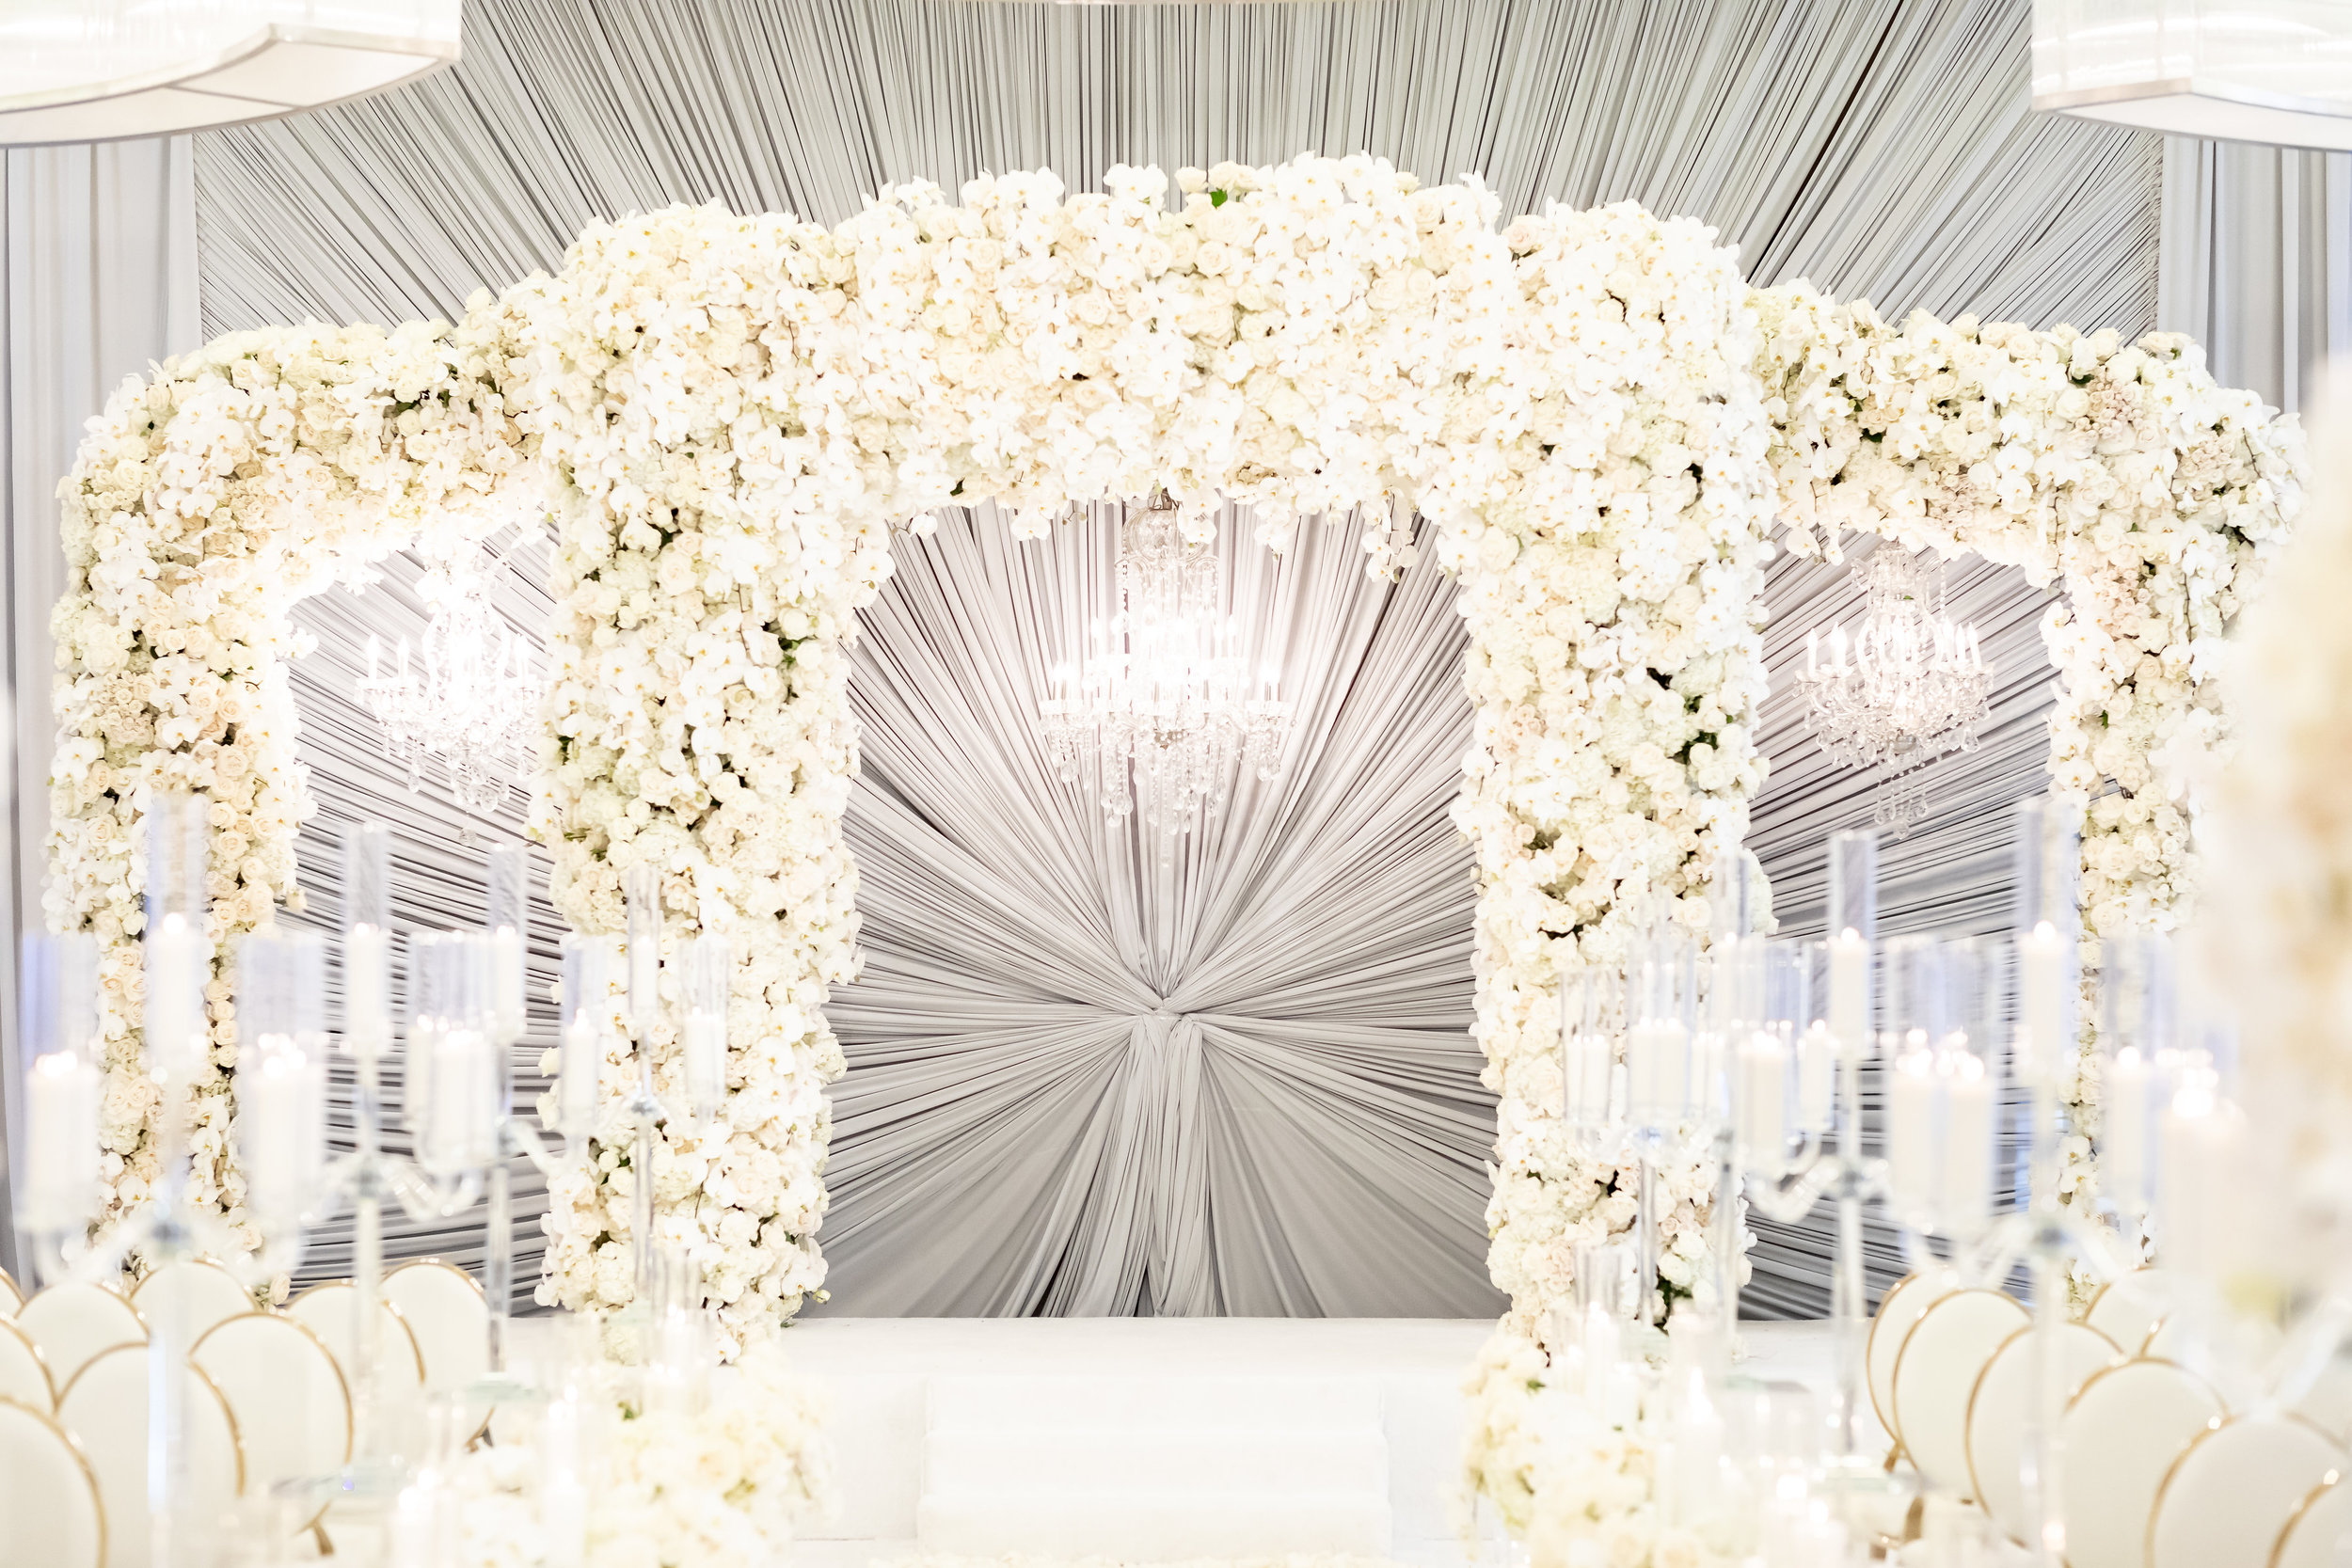 Grey starburst drape behind ceremony flower arch.  Designed and Produced by Las Vegas Wedding Planner Andrea Eppolito. Images by Brian Leahy.